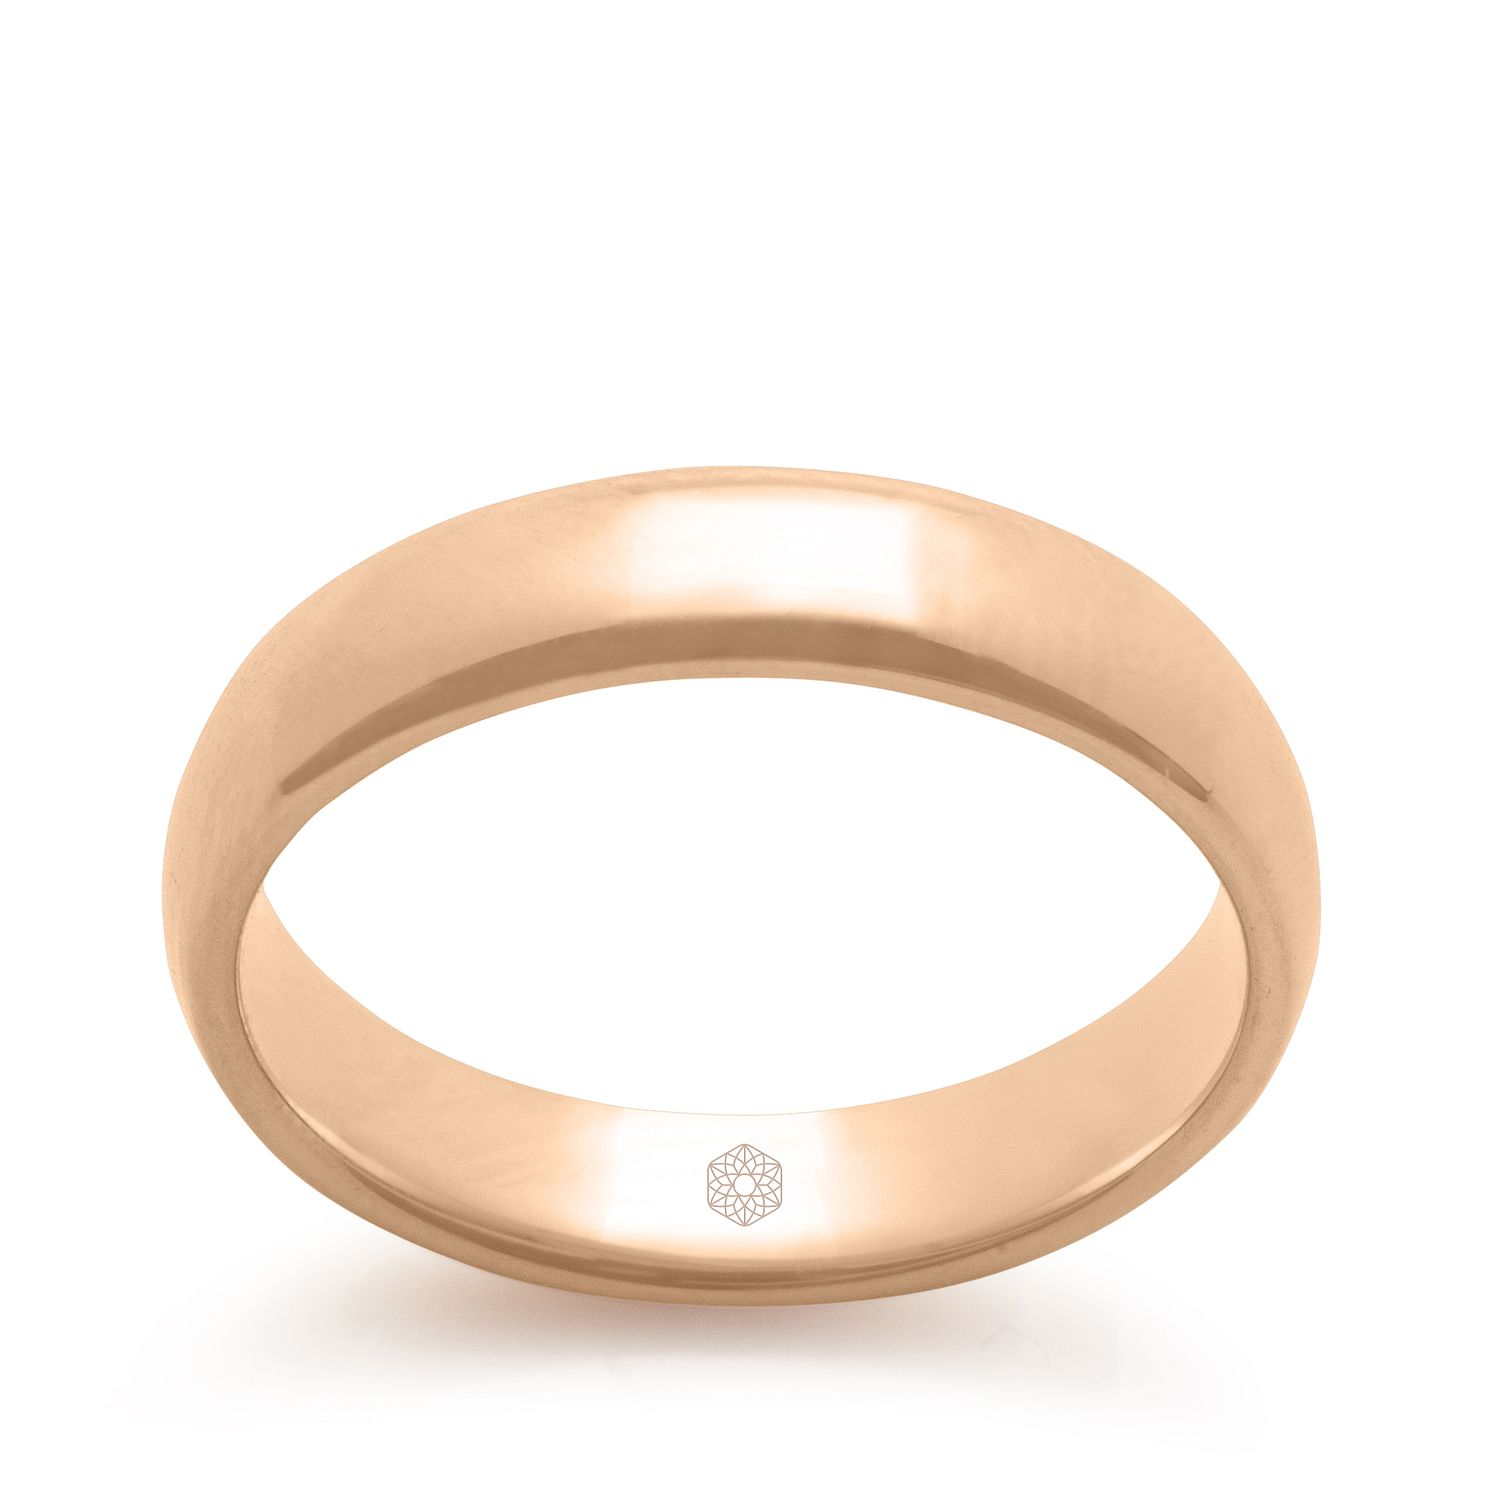 Baird Mint 18ct Rose Gold Blush 4mm Court Ring - Product number 3097358